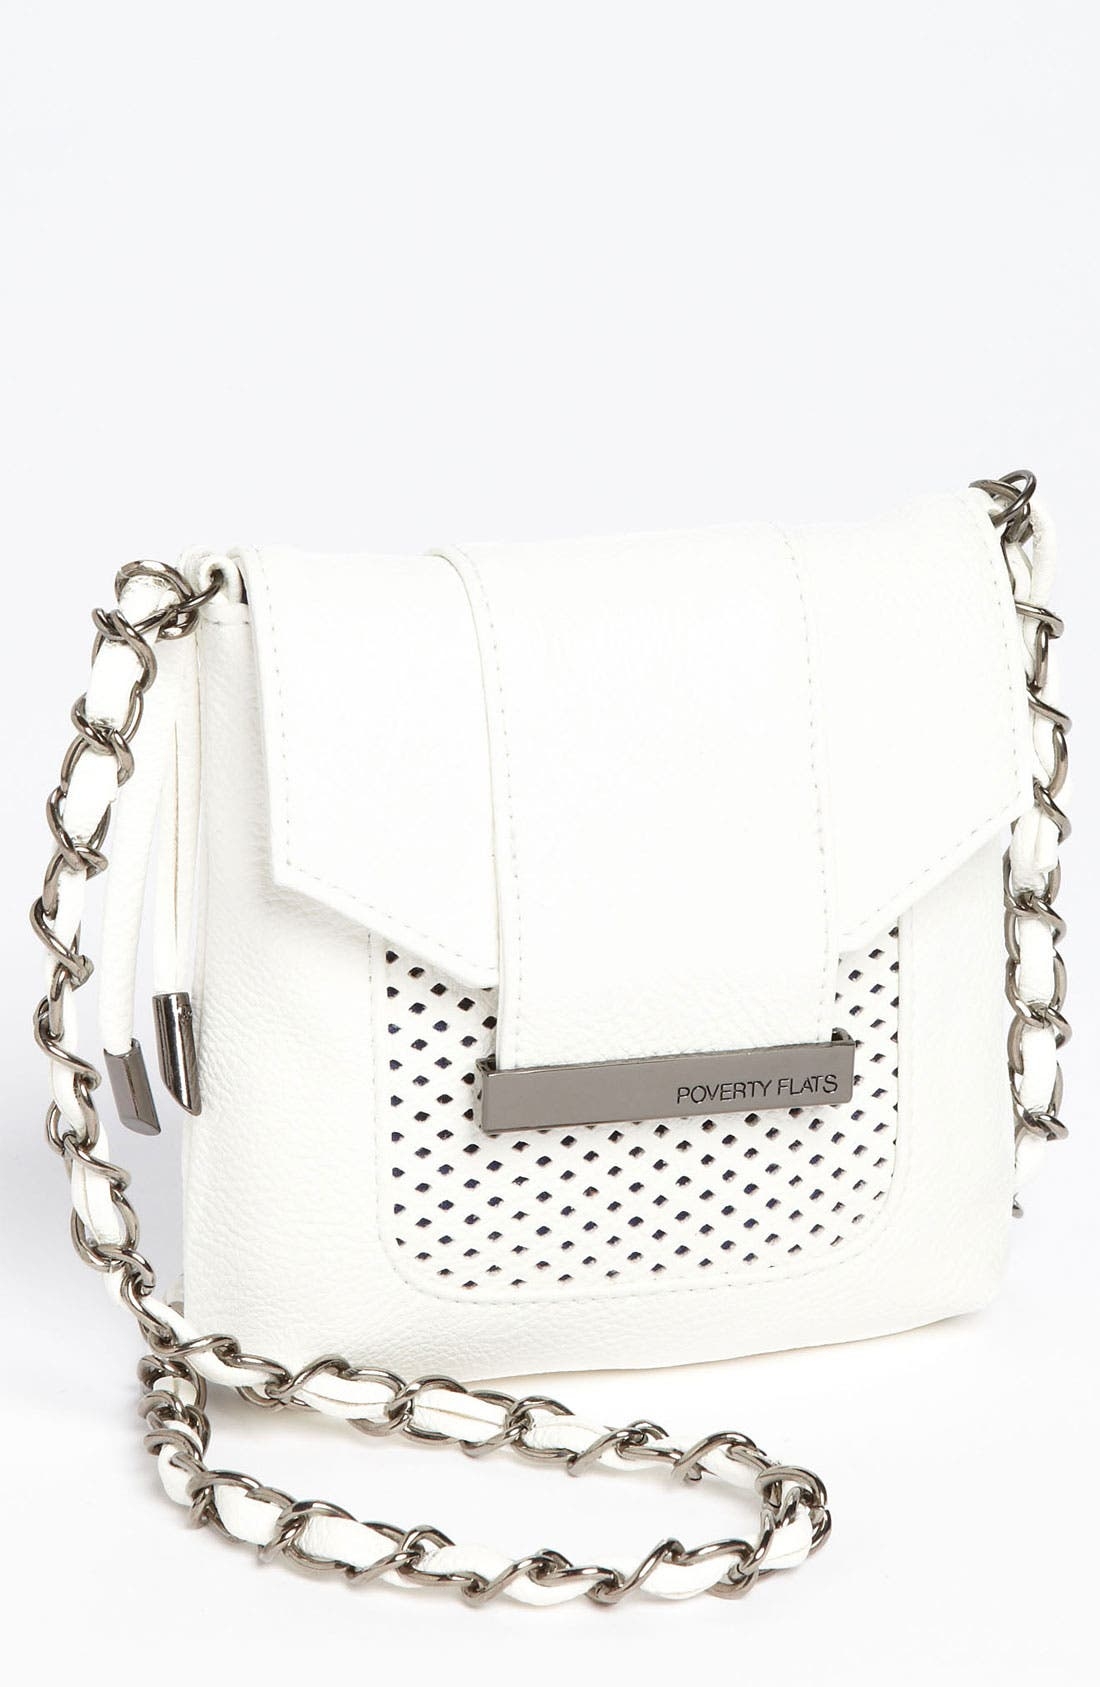 Main Image - POVERTY FLATS by rian 'Mesh Detail - Mini' Crossbody Bag